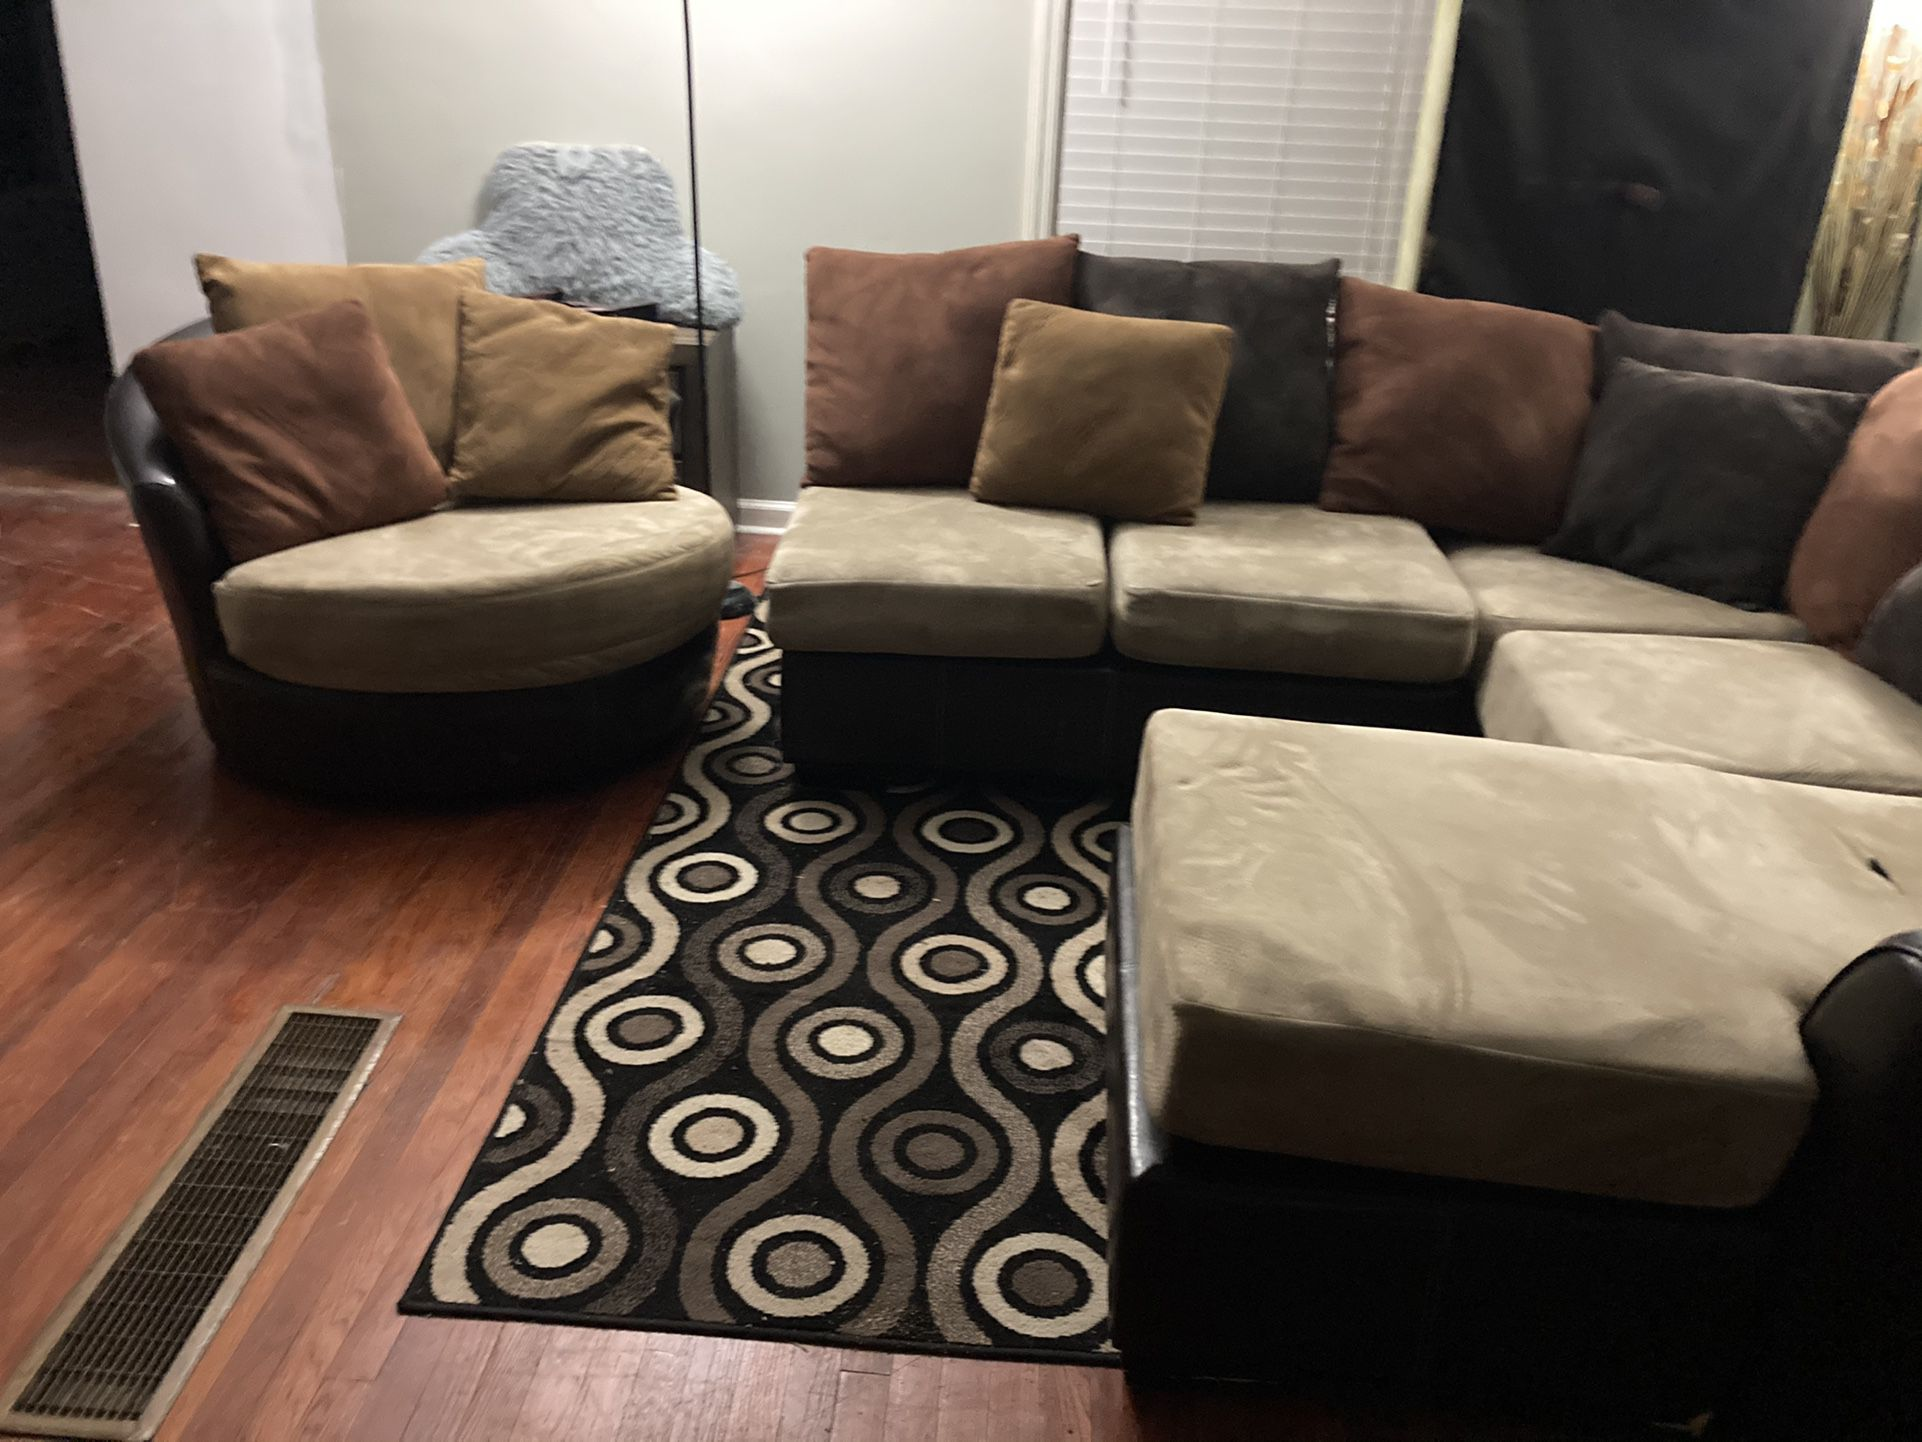 HAVERTYS PLUSH USED MOCHA SMALL 3PC SECTIONAL & REVOLVING CHAIR $399 OBO...ALL OFFERS WELCOME!!